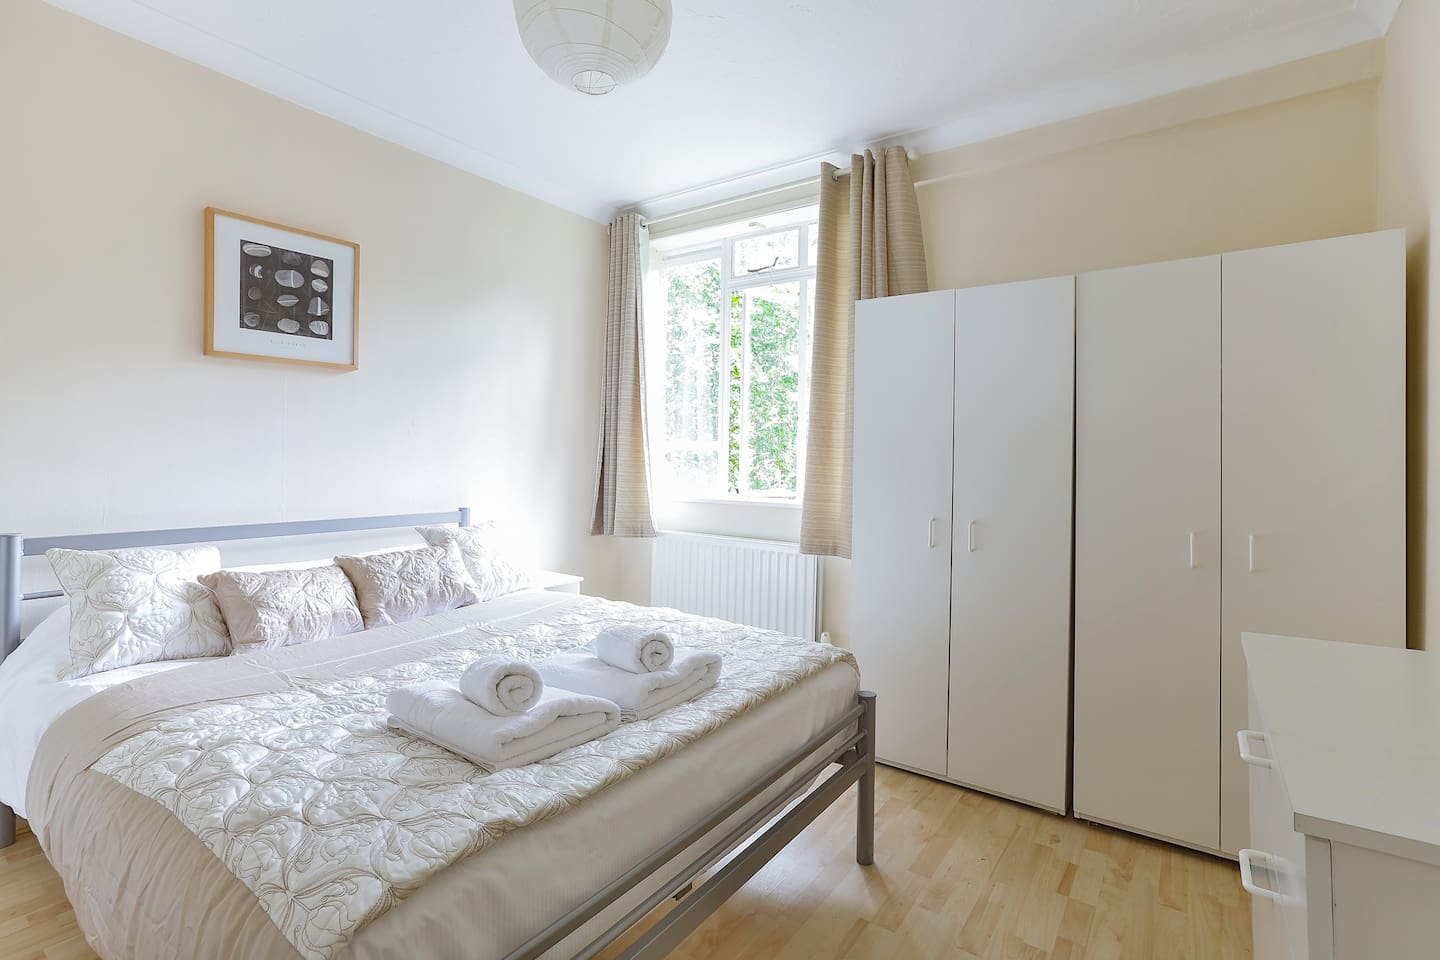 Bright and spacious bedroom for 2 people. Plenty of hanging and storage space.extra plug sockets under the bed and  there is a bedside light on the bedside table plus a fan for hot nights. Sleeping for 2 other people in comfy lounge sofa bed.